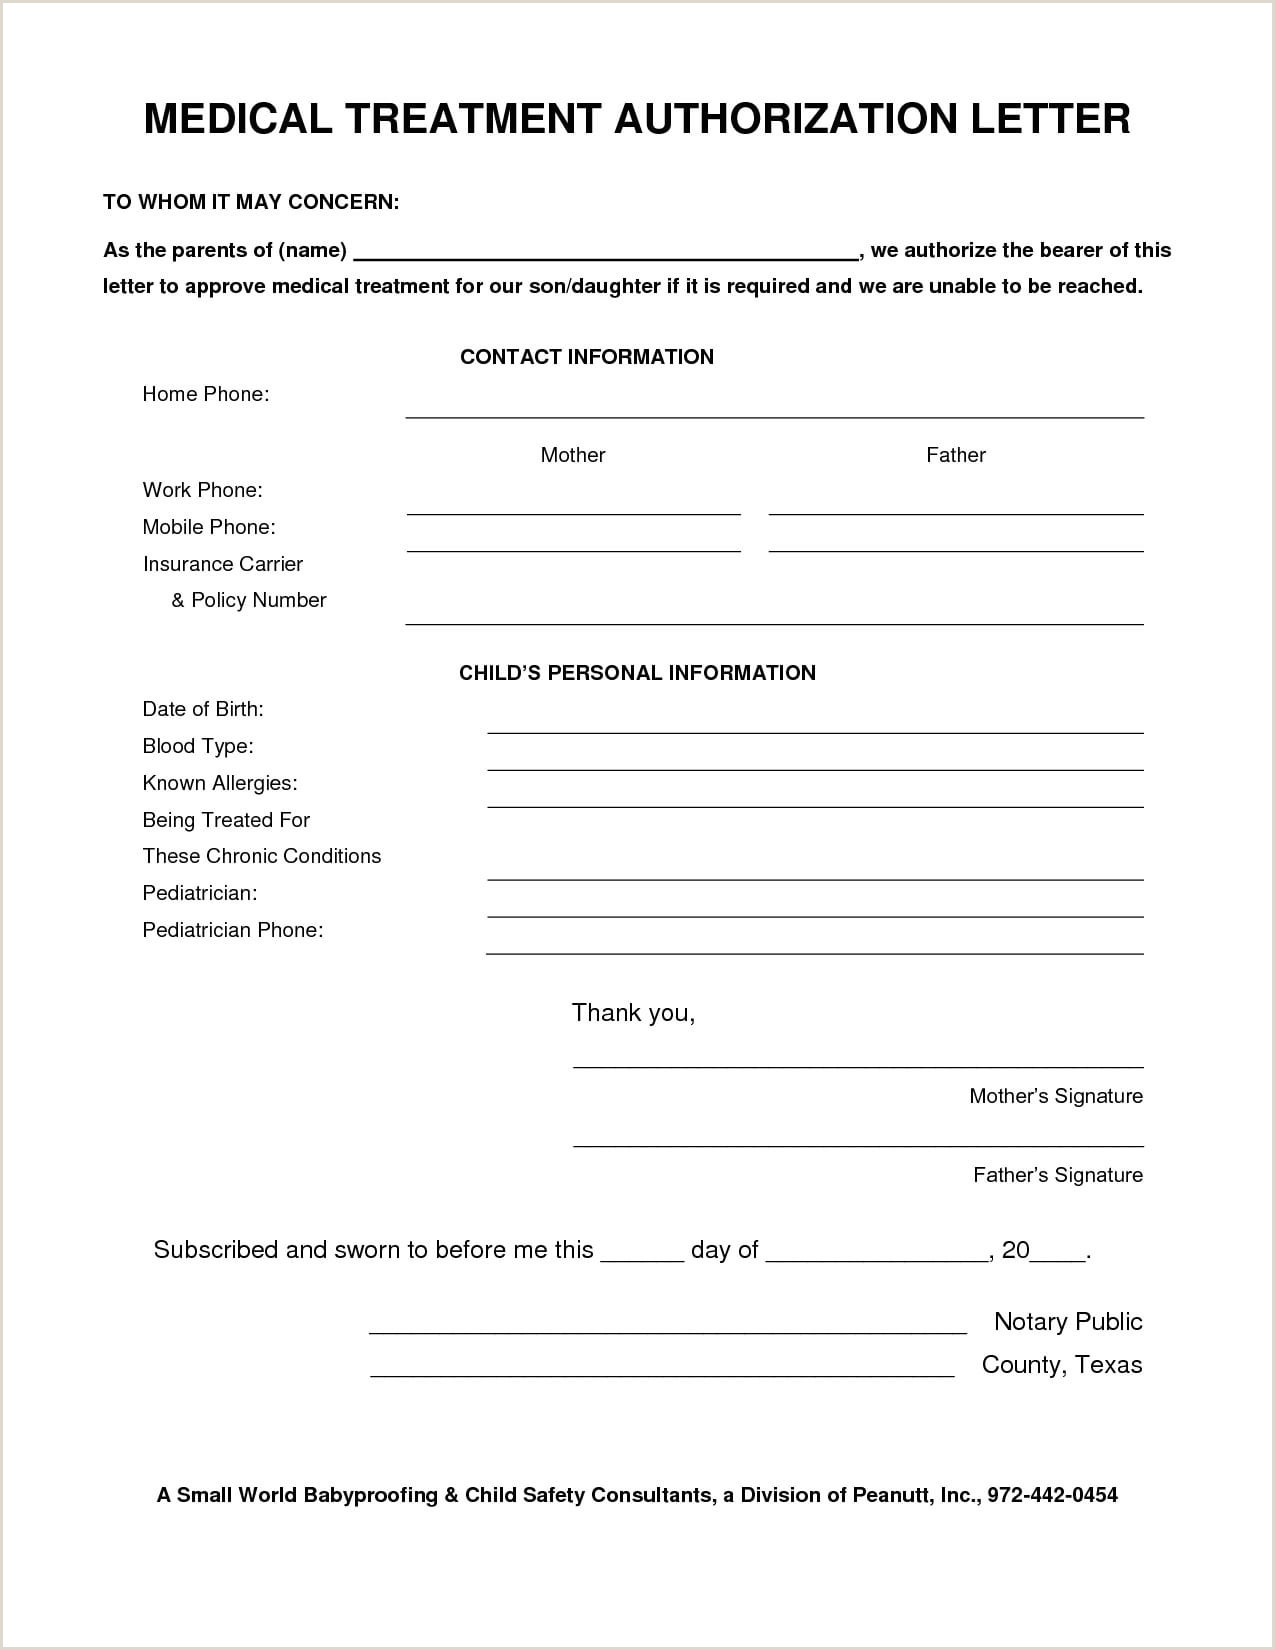 Sample Medical Authorization Letter for Child 9 Medical Authorization Letter Examples Pdf